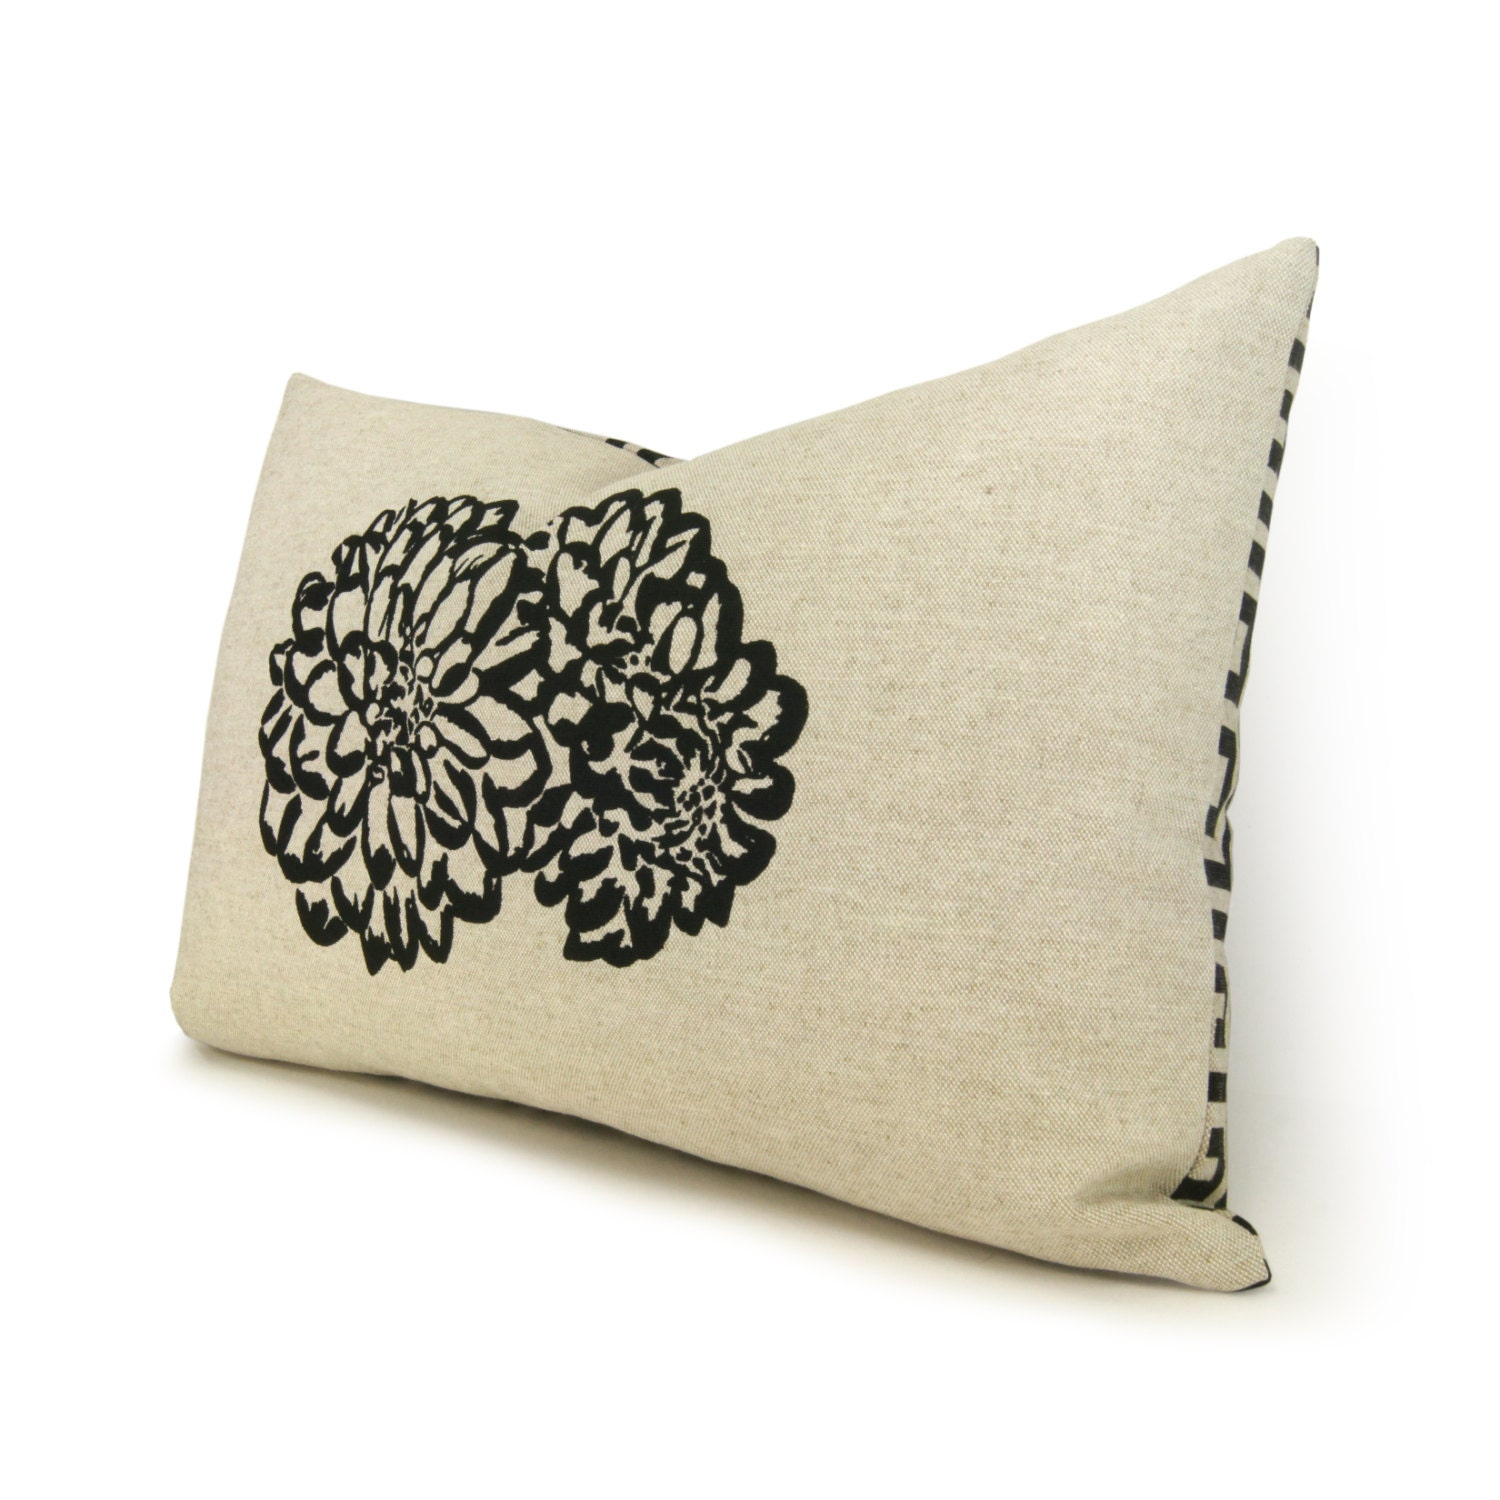 Sale 12x18 Lumbar Pillow Cover with Flower Print in Black